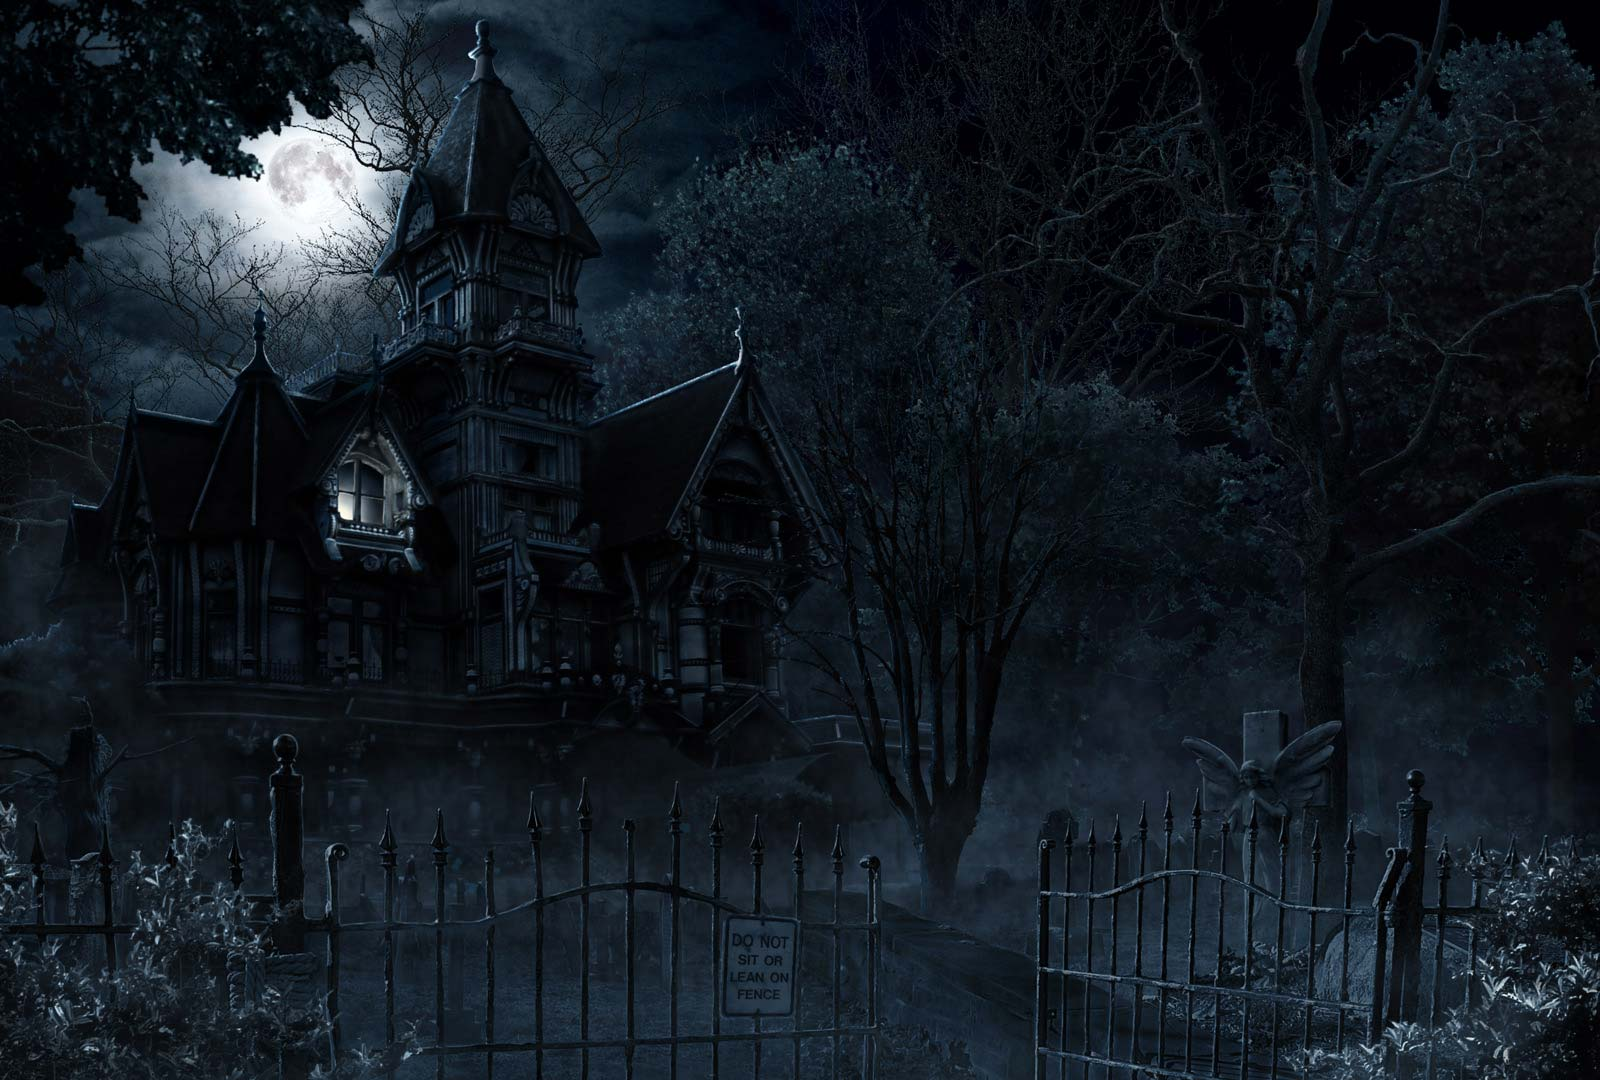 Haunted House and Mansion (Ghost)